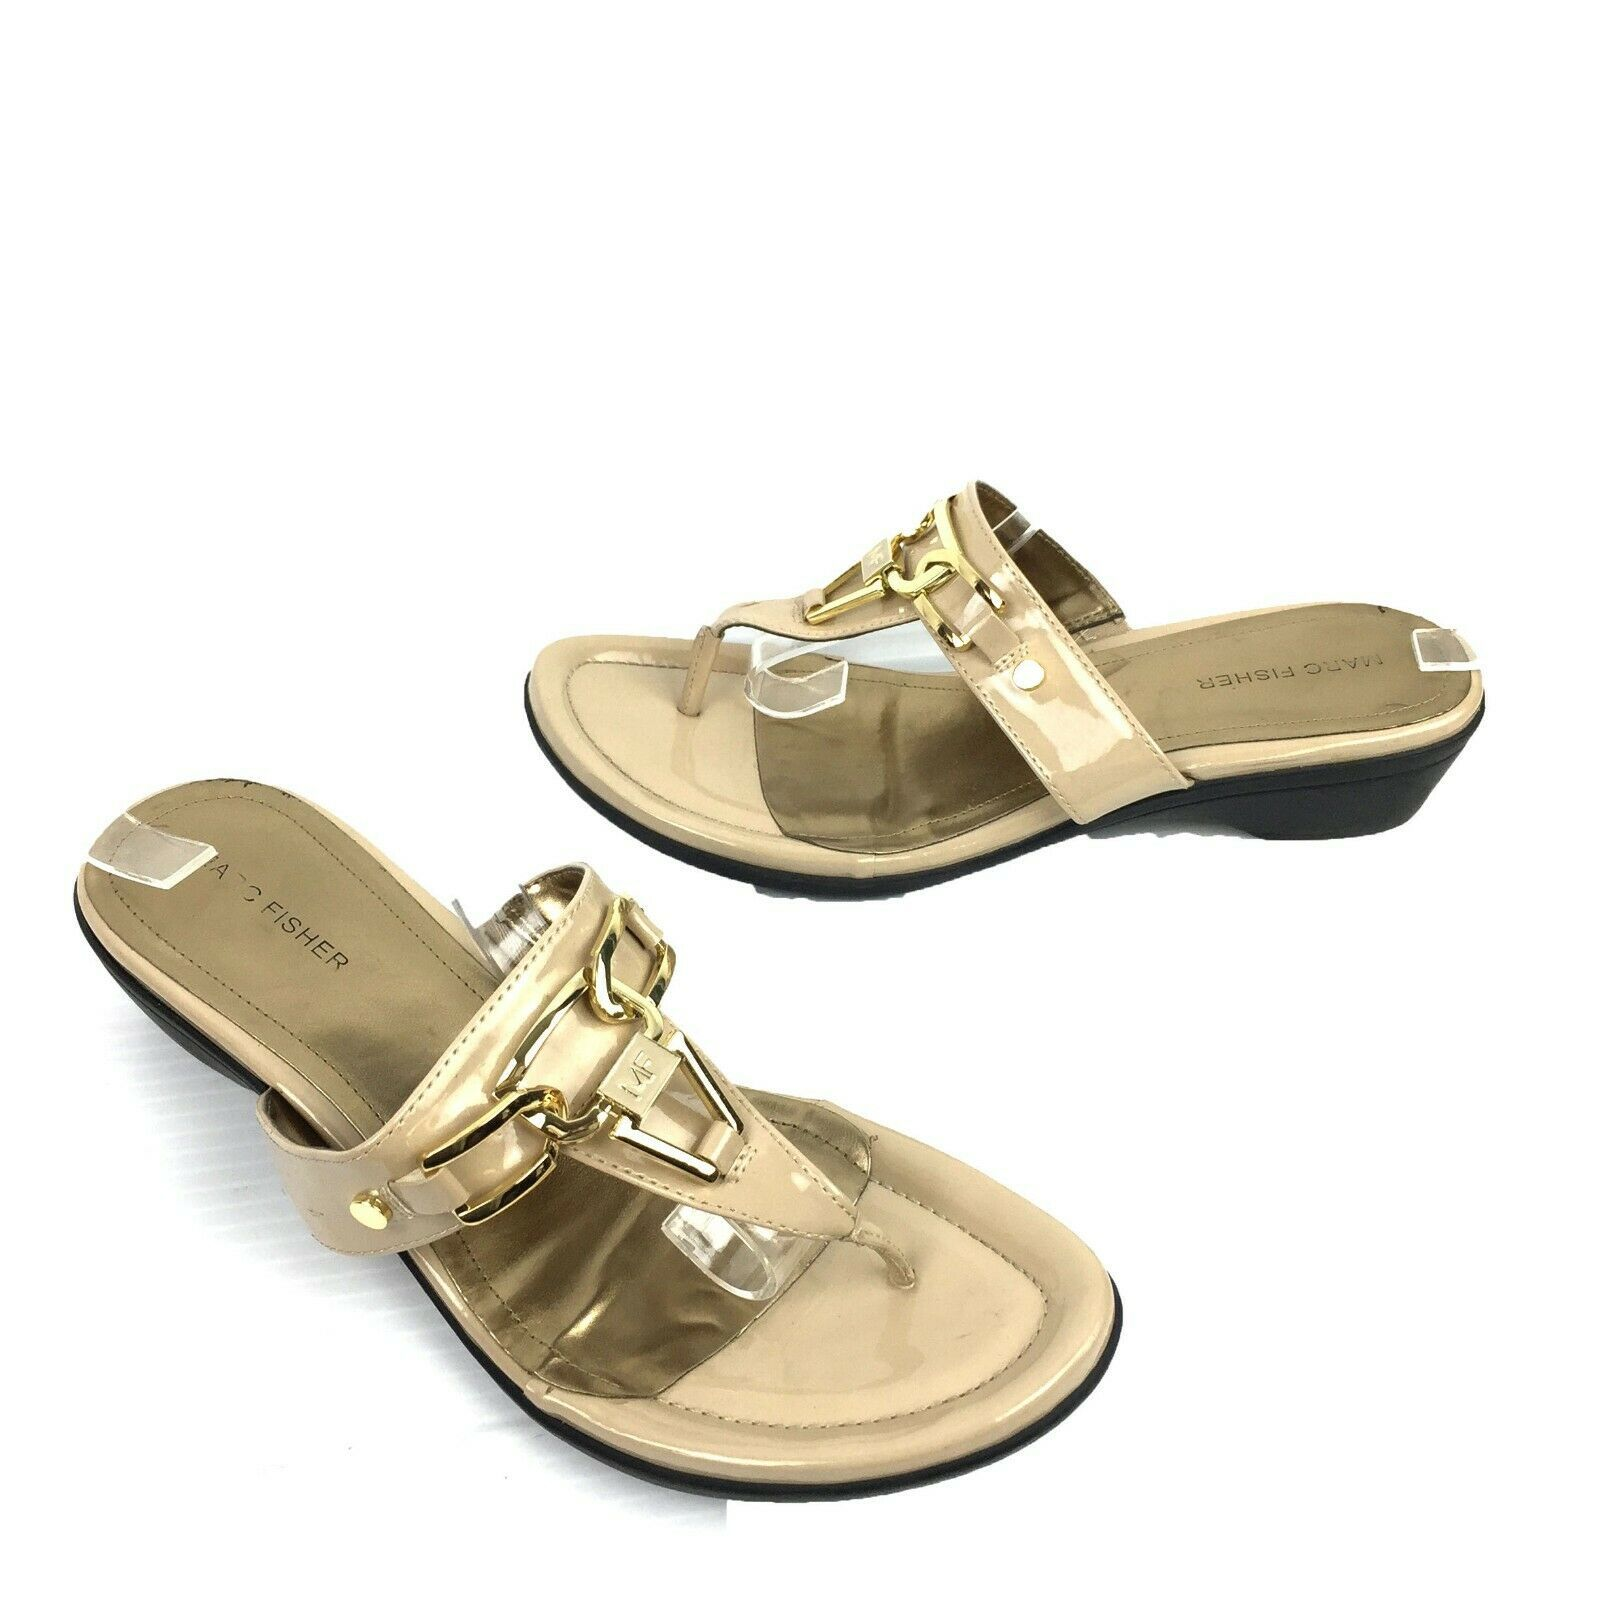 MARC FISHER Tan Faux Patent Leather Thong Sandals Size 10 M